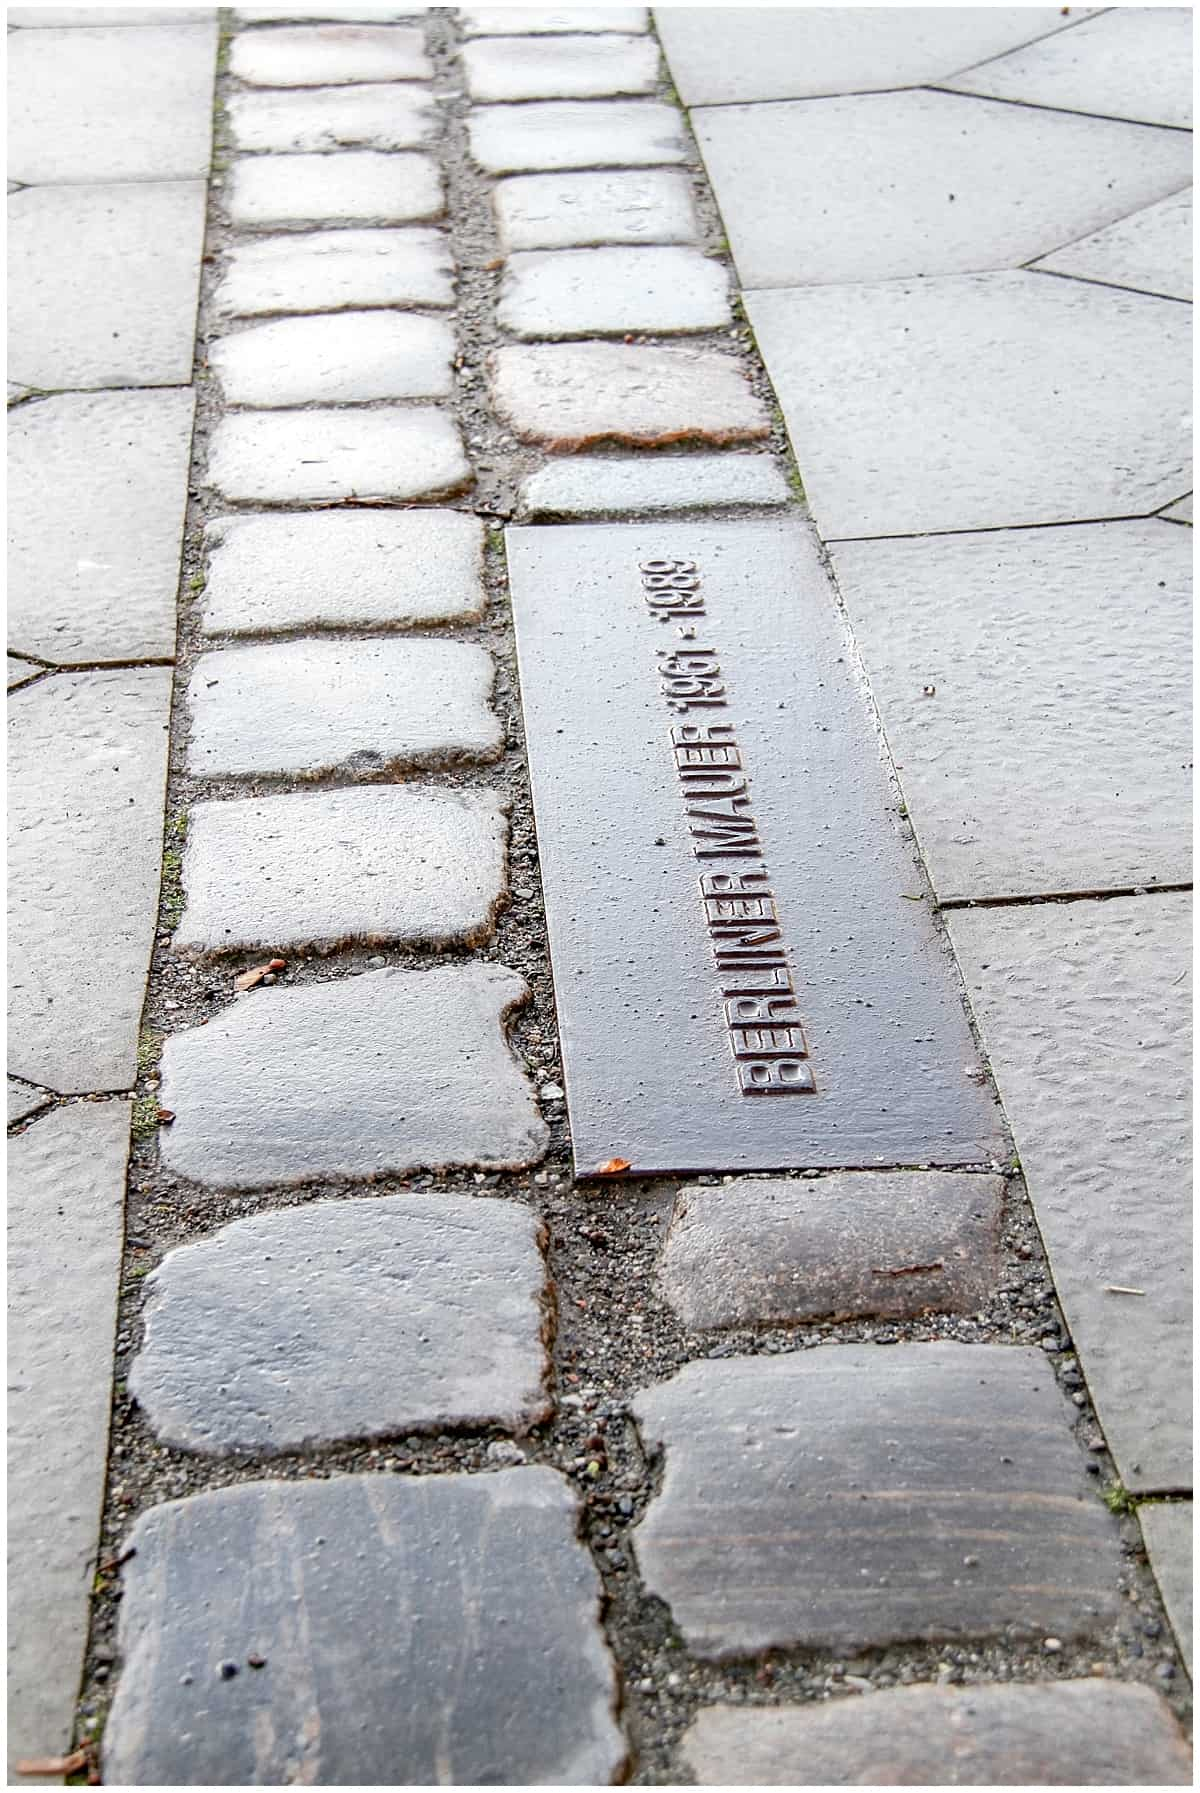 Germany - Berlin - Fragments of Berlin wall and plaque on street level